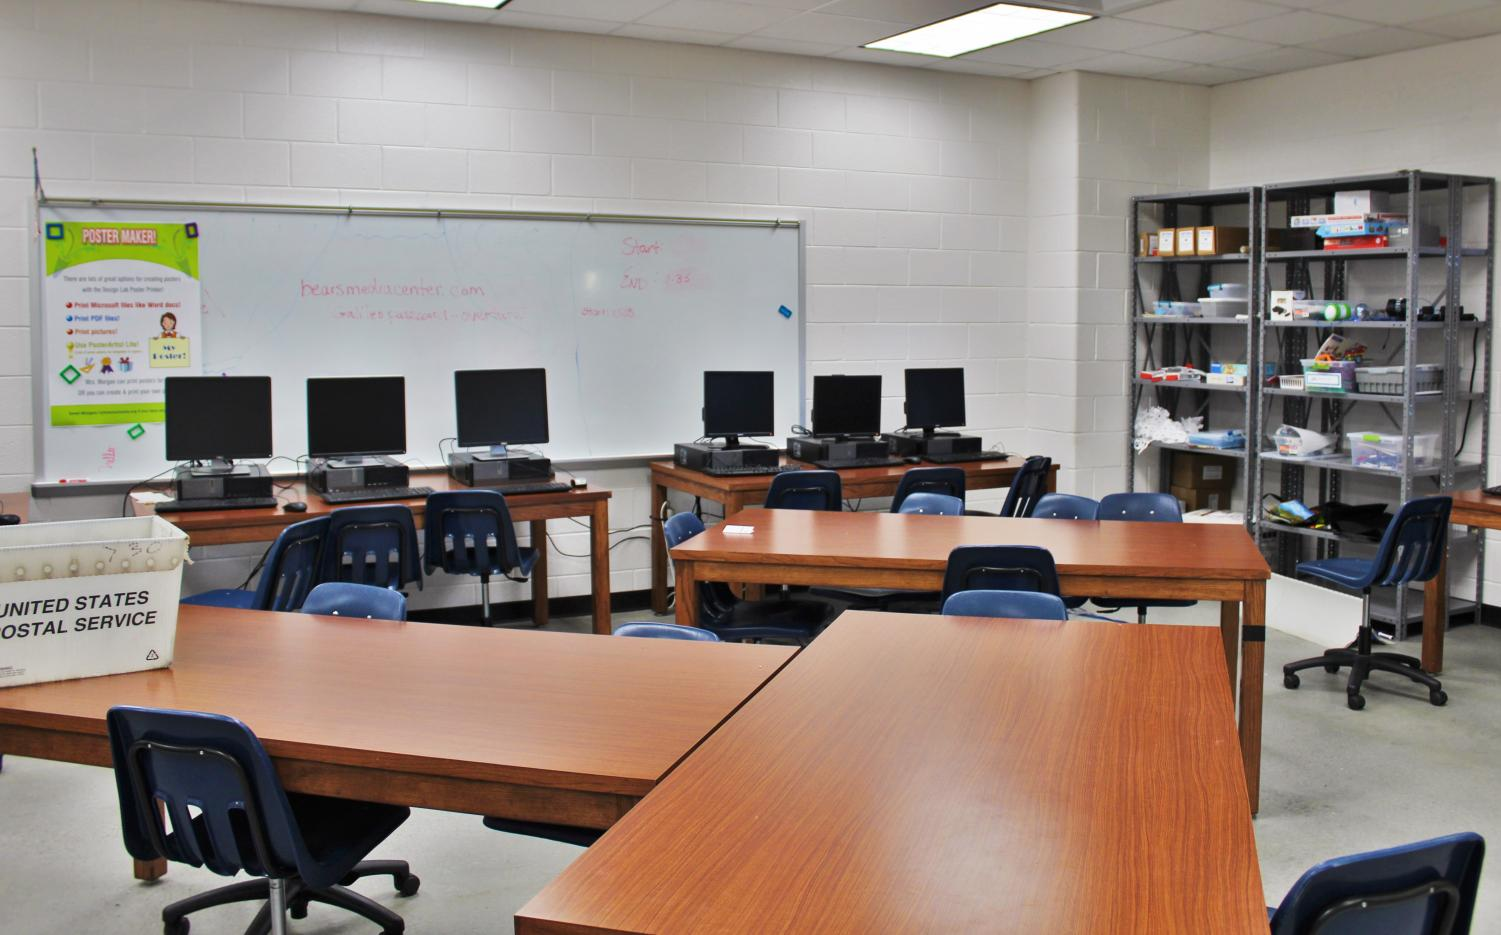 The+Design+Lab+provides+ample+space+for+students+of+all+grade++levels+to+get+work+done.